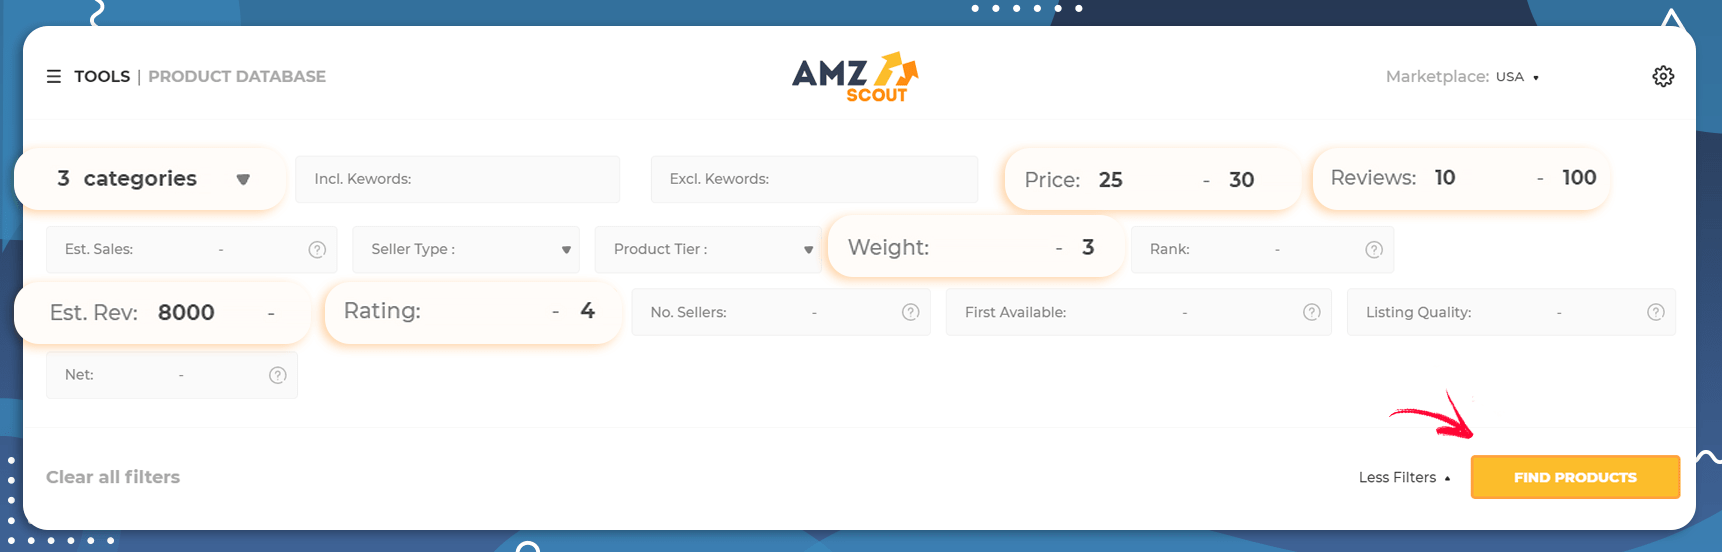 Setting Filters in the AMZScout Product Database